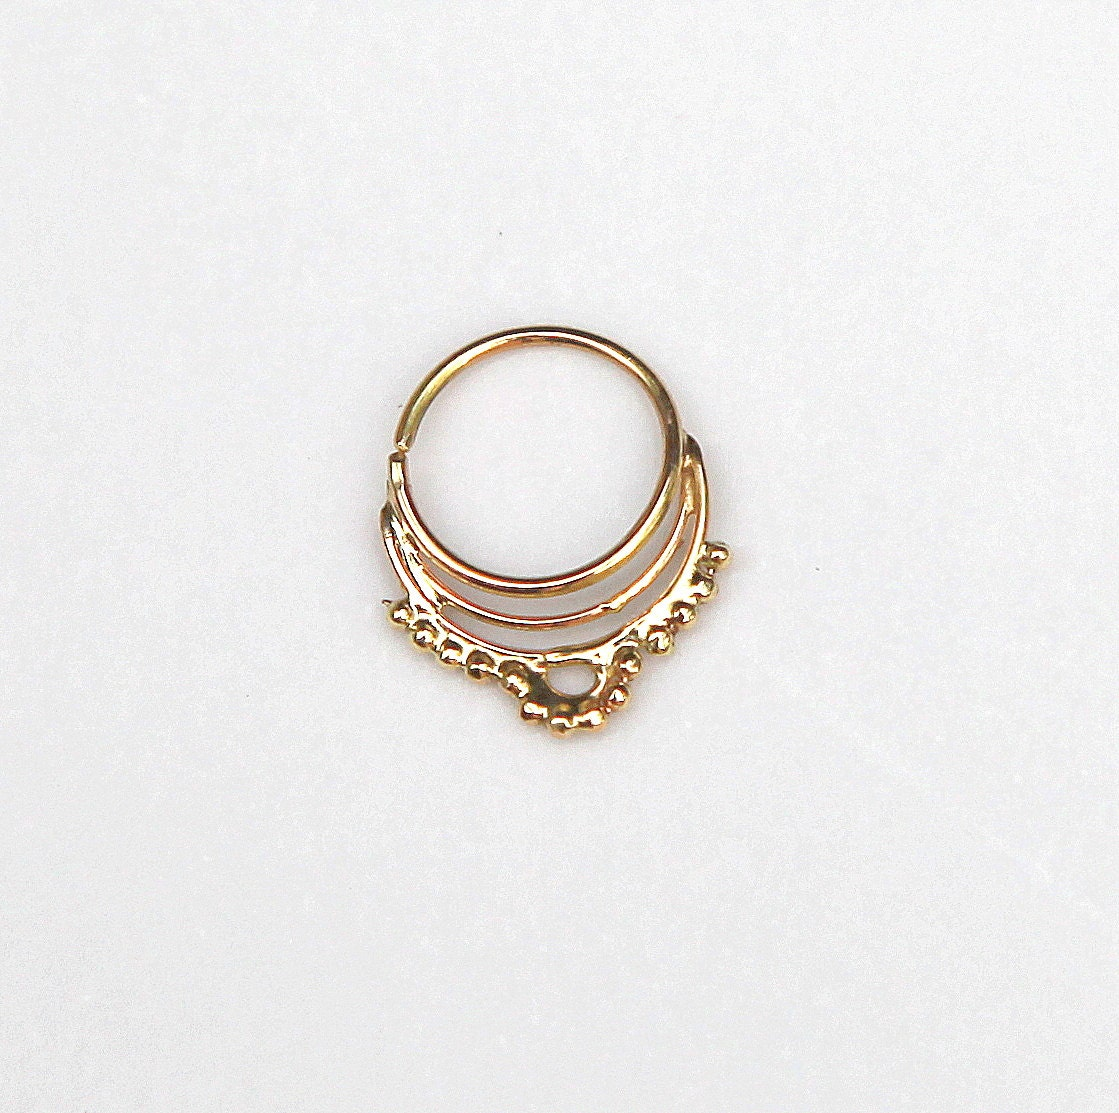 Septum jewelry All septum jewelry Basic septum jewelry Clicker Captive Seamless Gold Pinchers Circular barbells Tusks & spikes Retainer Plugs Ornate & hanging jewelry All 14k Gold Eka Septum Clicker LIMITED $ Approx Gauge(s): 16g More colors available. 14k Gold Lila Septum Clicker LIMITED $